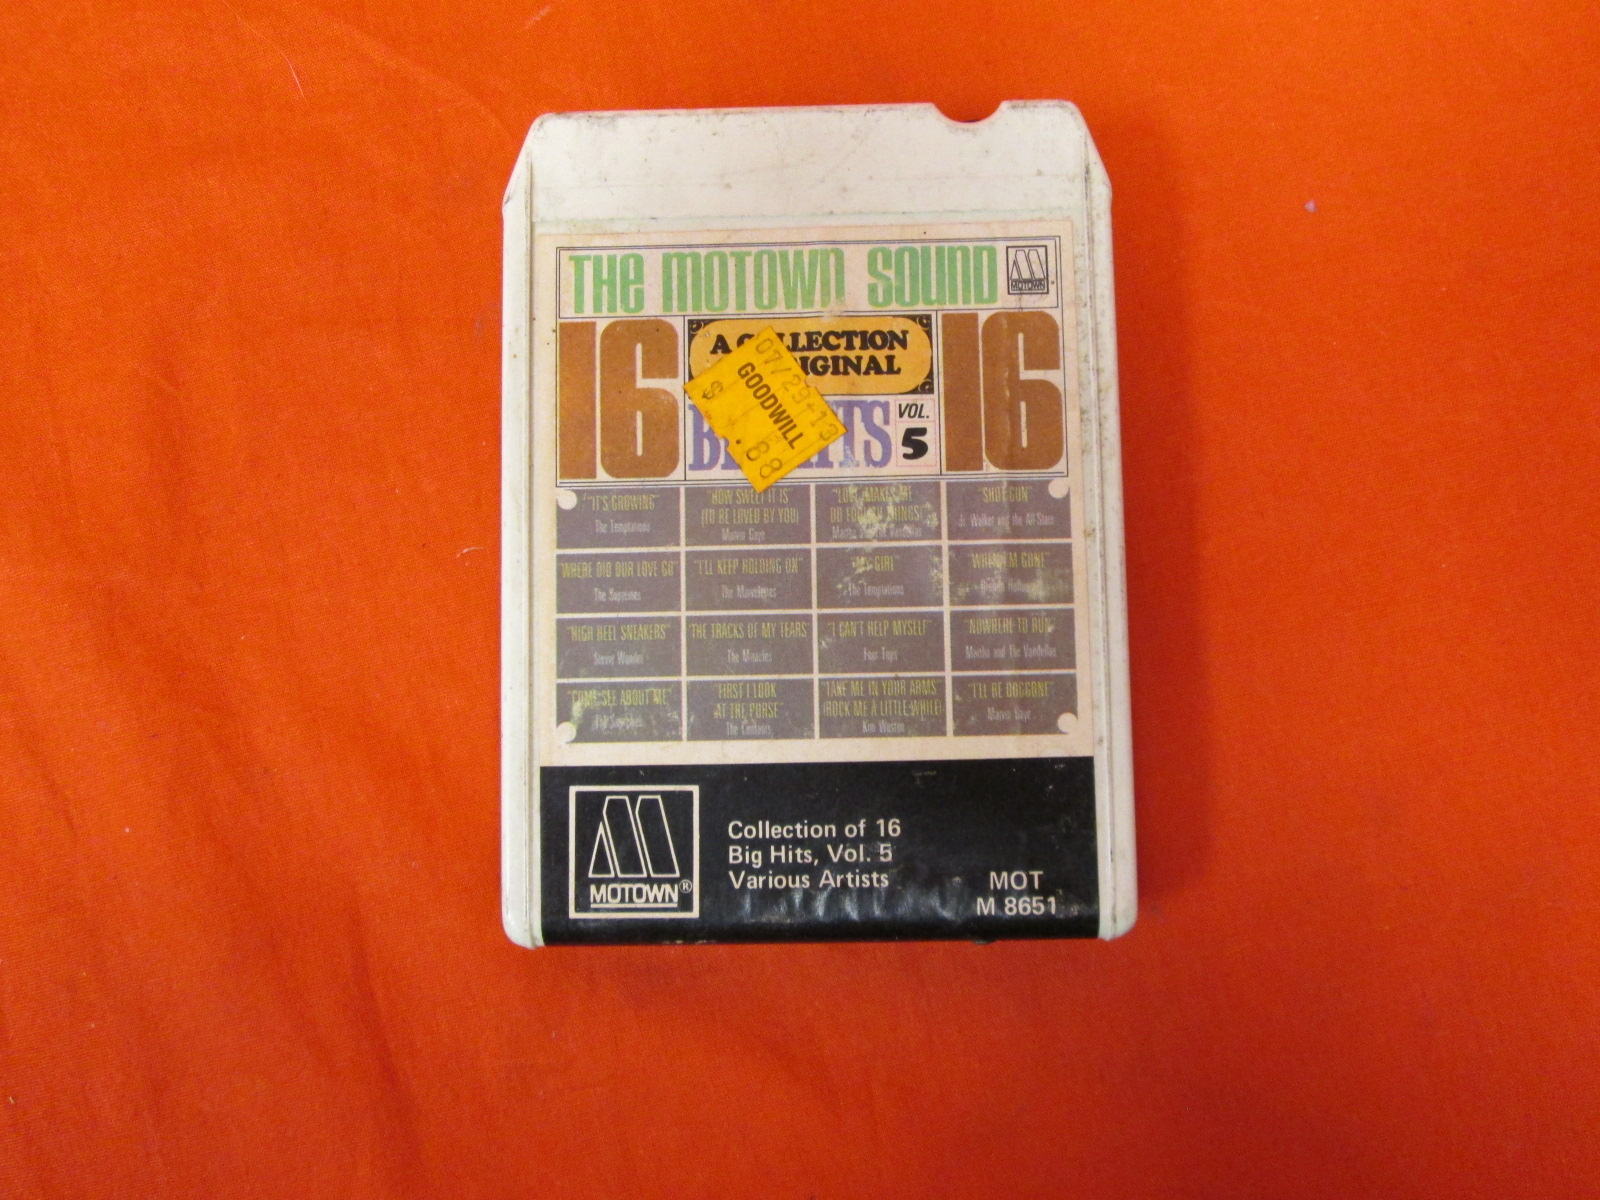 The Motown Sound: A Collection Of 16 Original Big Hits Vol 5 On 8